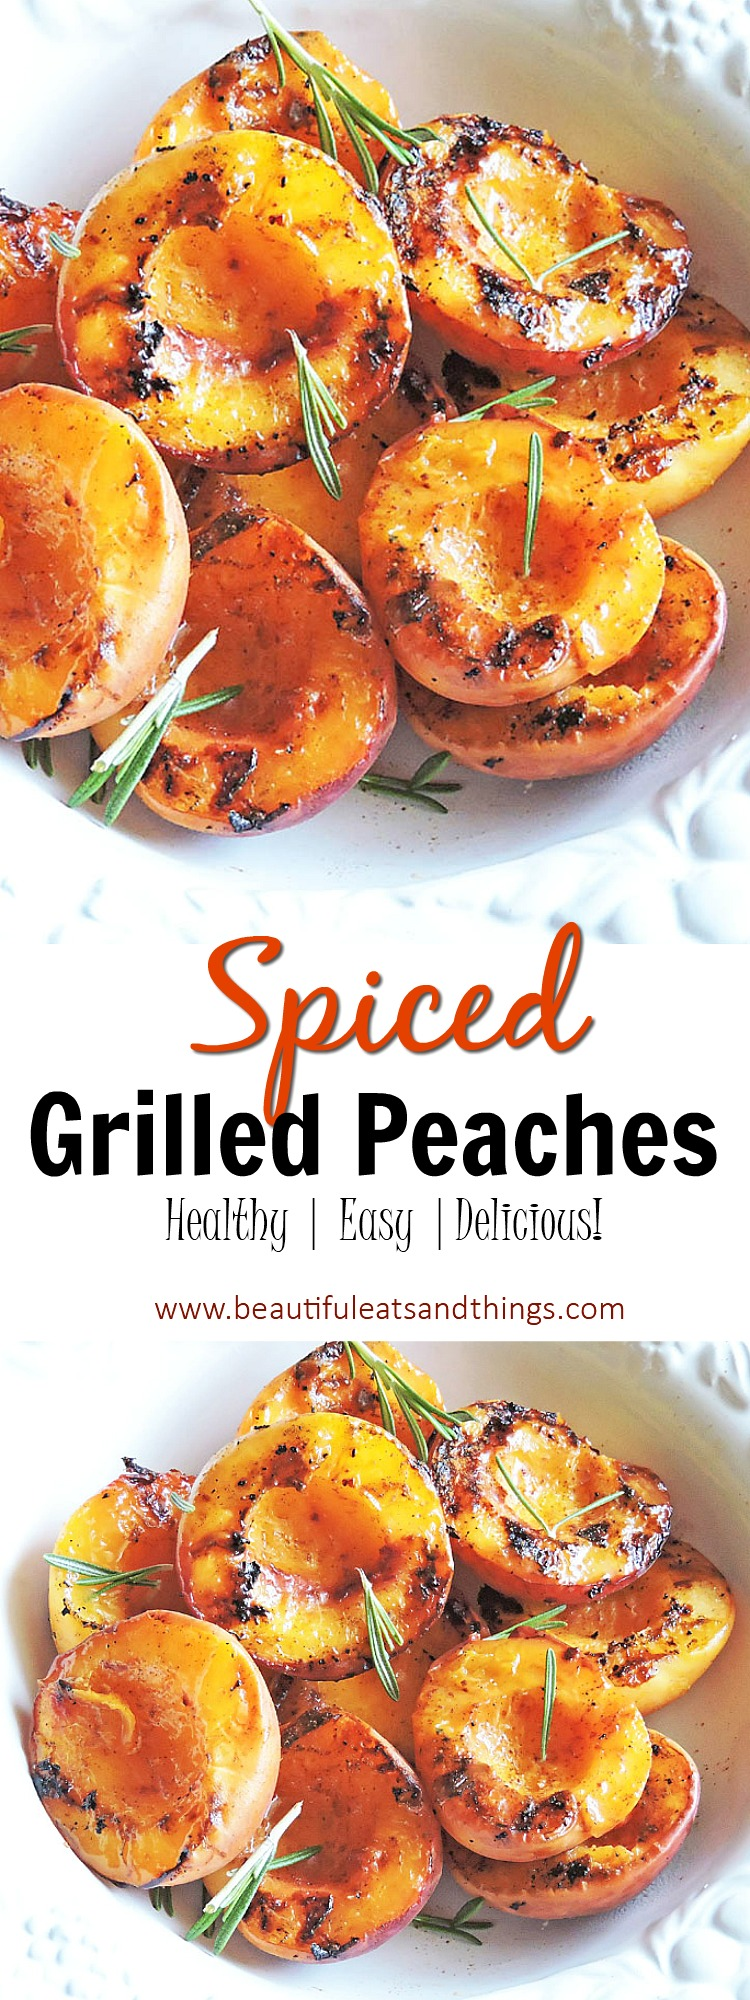 Spiced Grilled Peaches